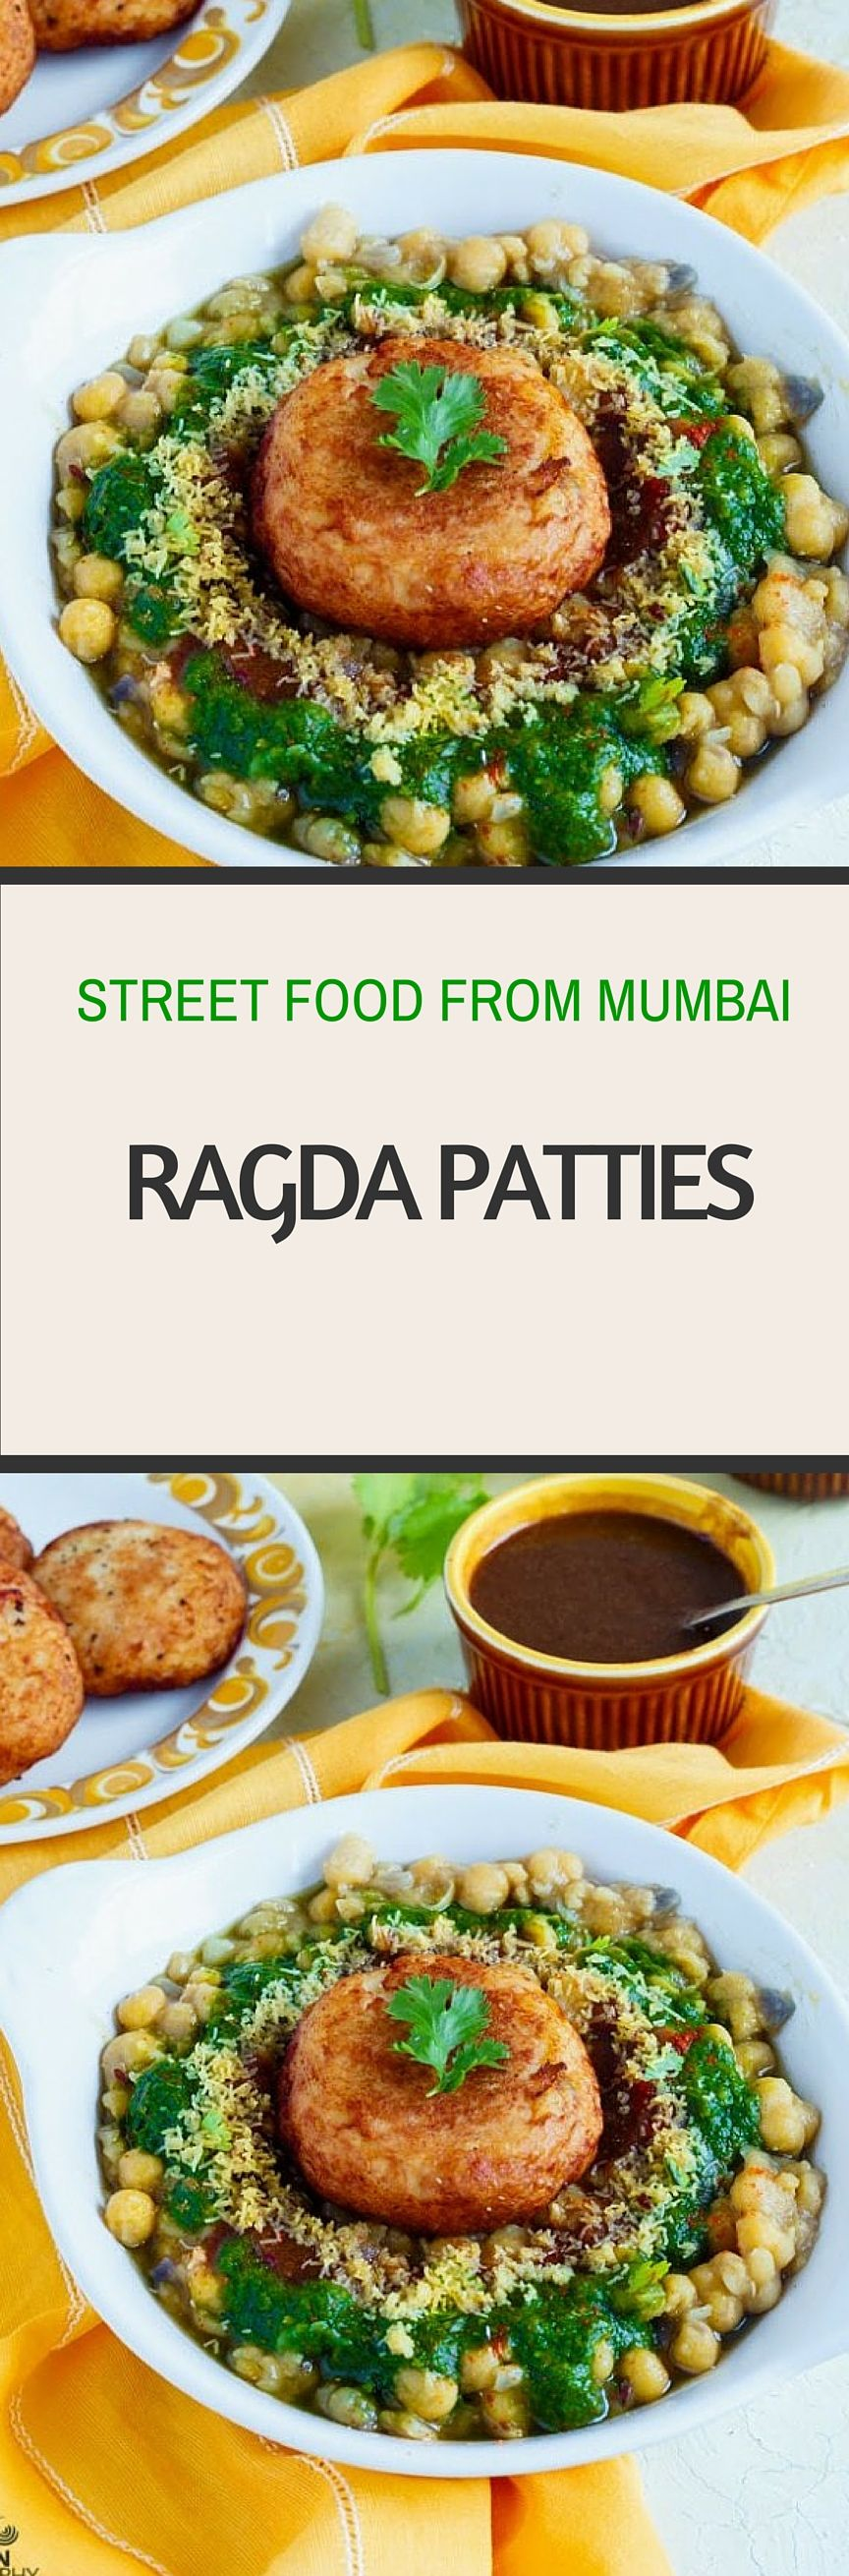 Ragda patties street food from mumbai street food mumbai and ragda patties street food from mumbai veggie snackssnacks recipesveggie recipesrecipiesgujarati forumfinder Gallery